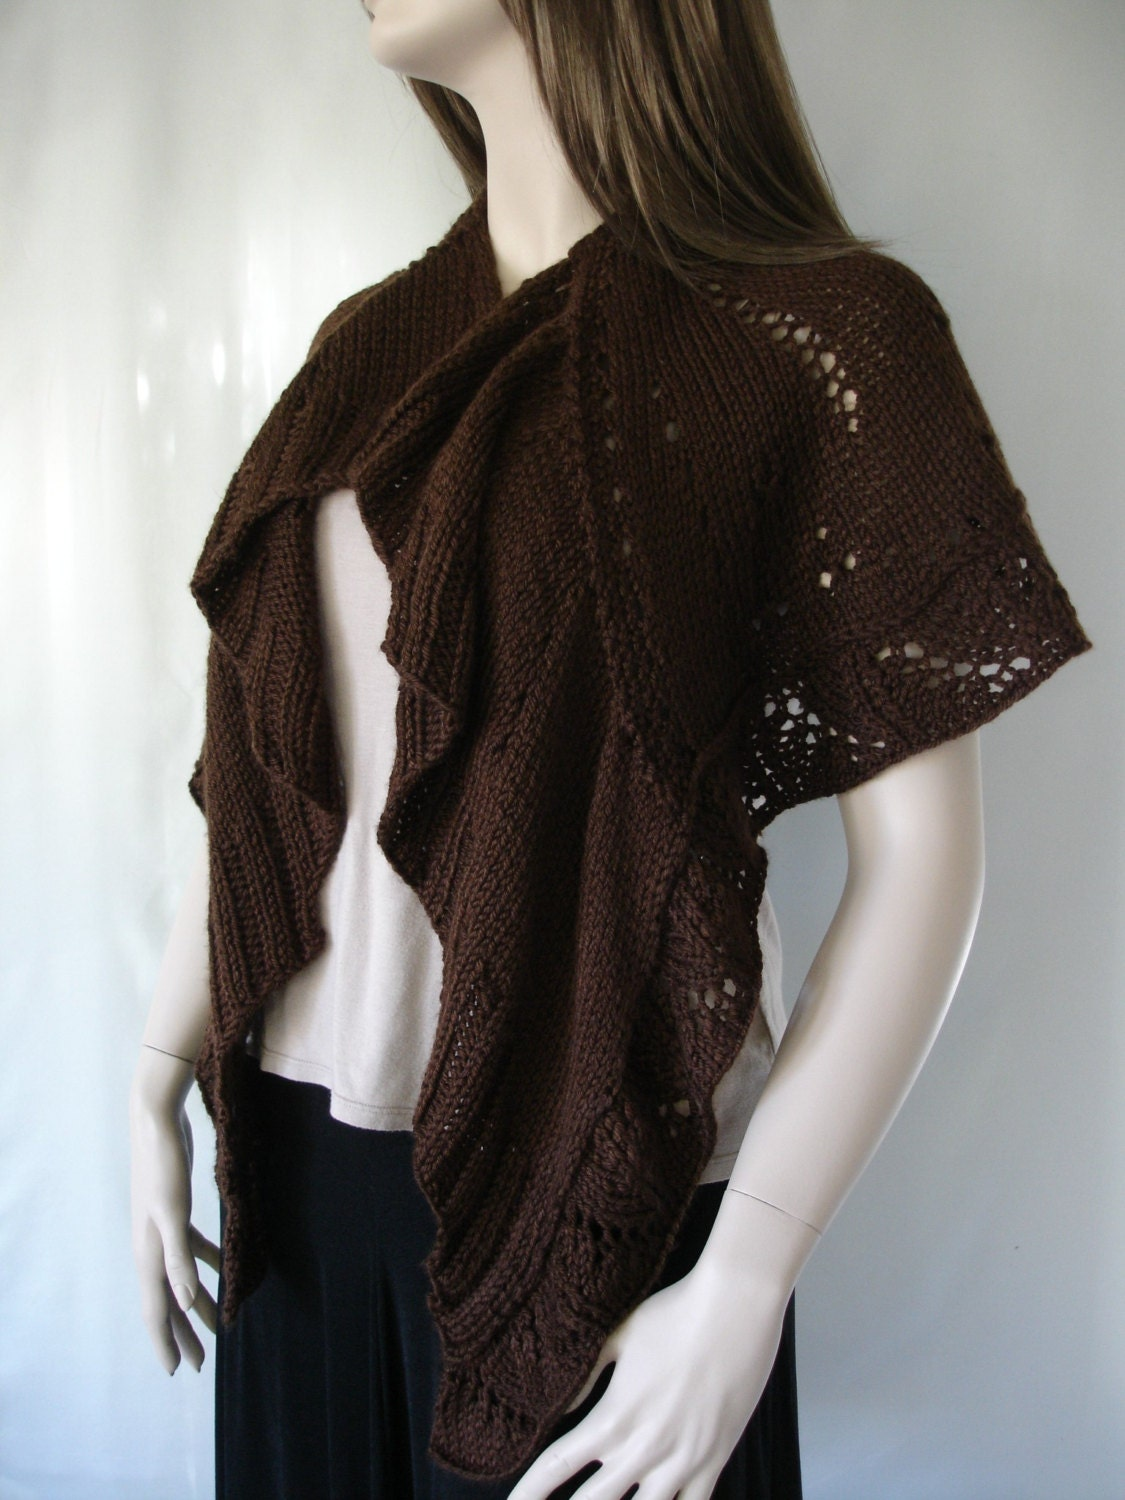 You can use a shawl